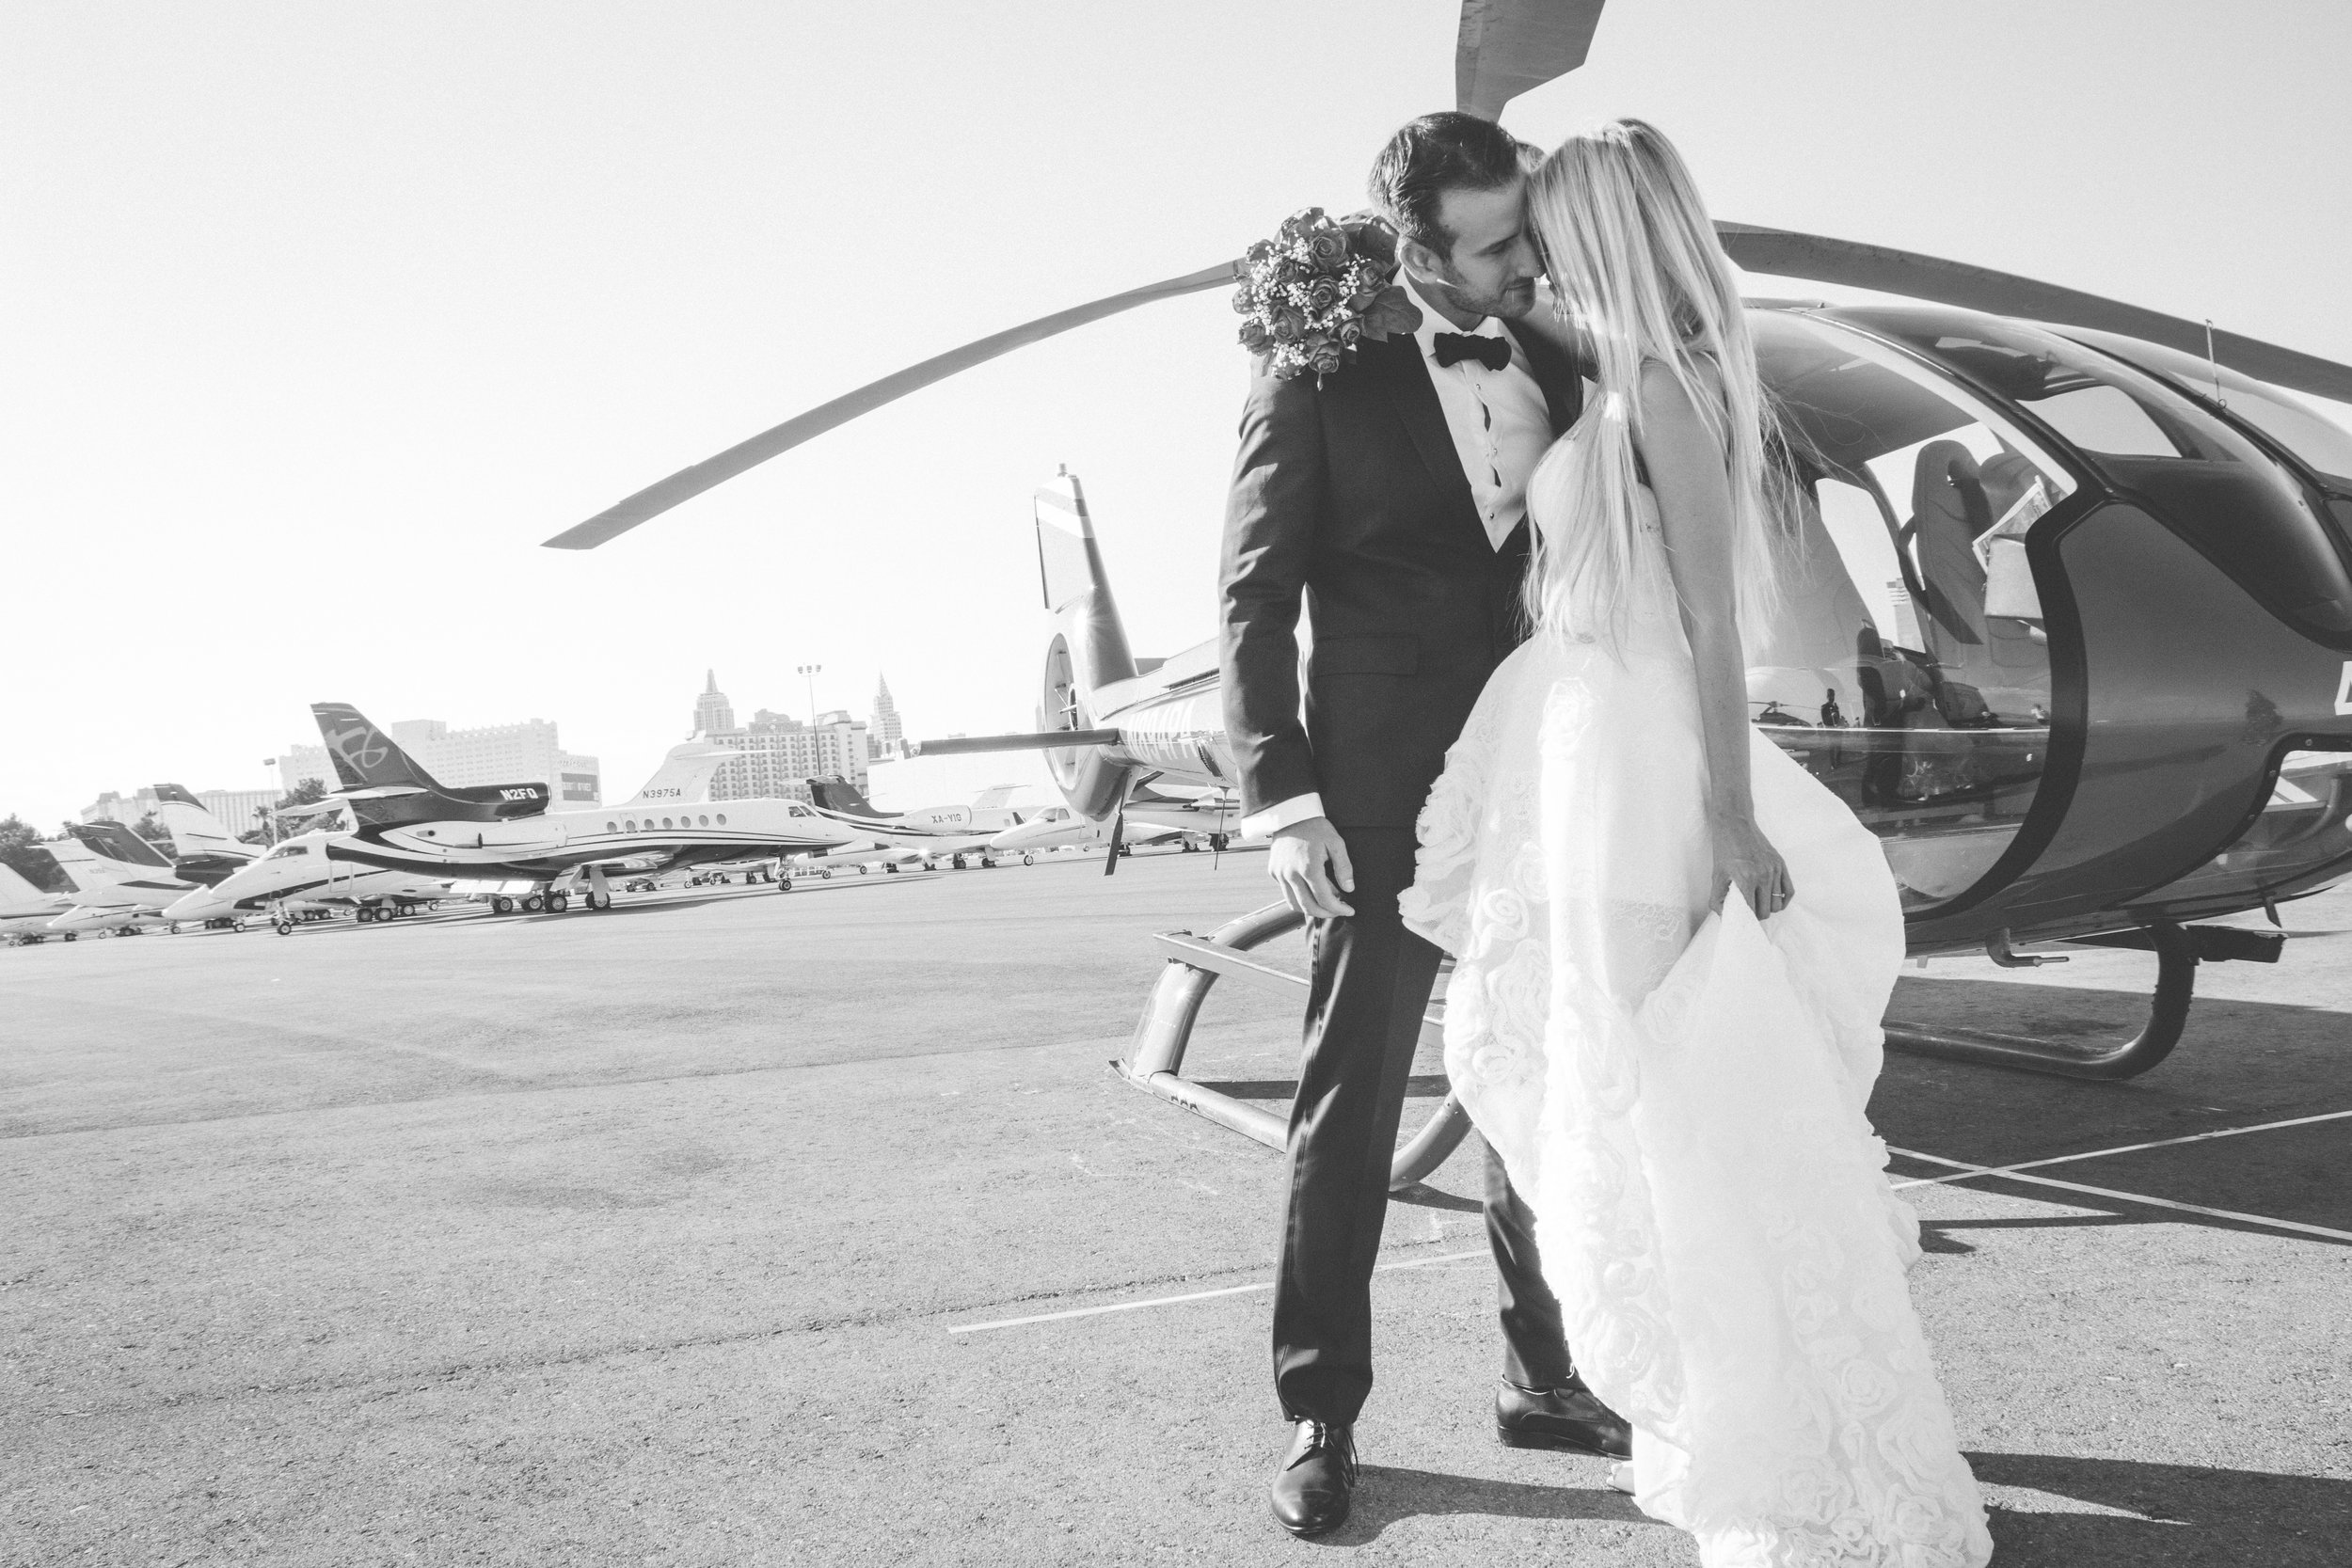 A Bride and Groom and their Helicopter Chariot